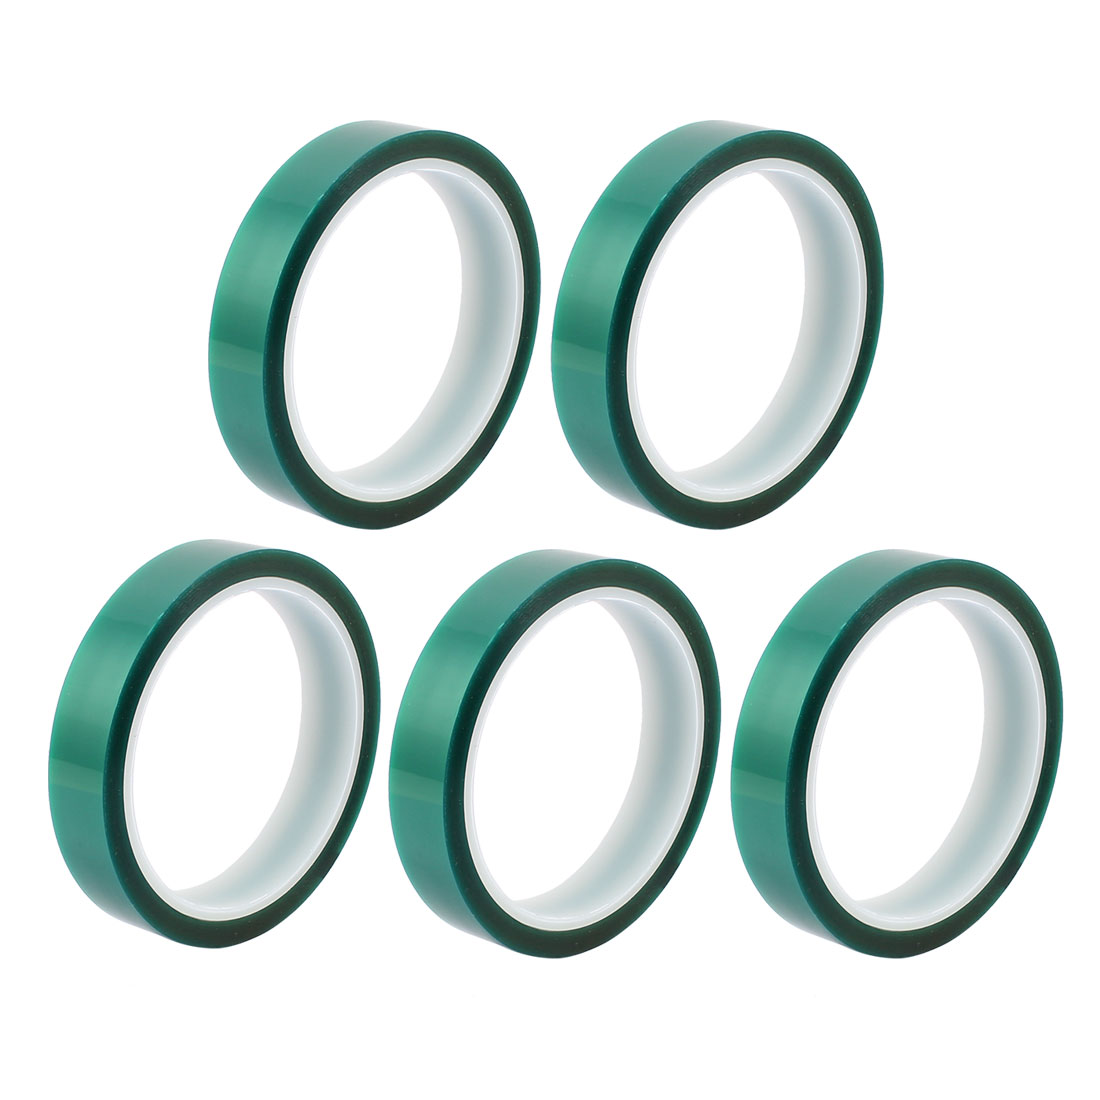 5pcs 18mm Width 33M Long Green PET High Temperature Heat Resistant PCB Solder Tape